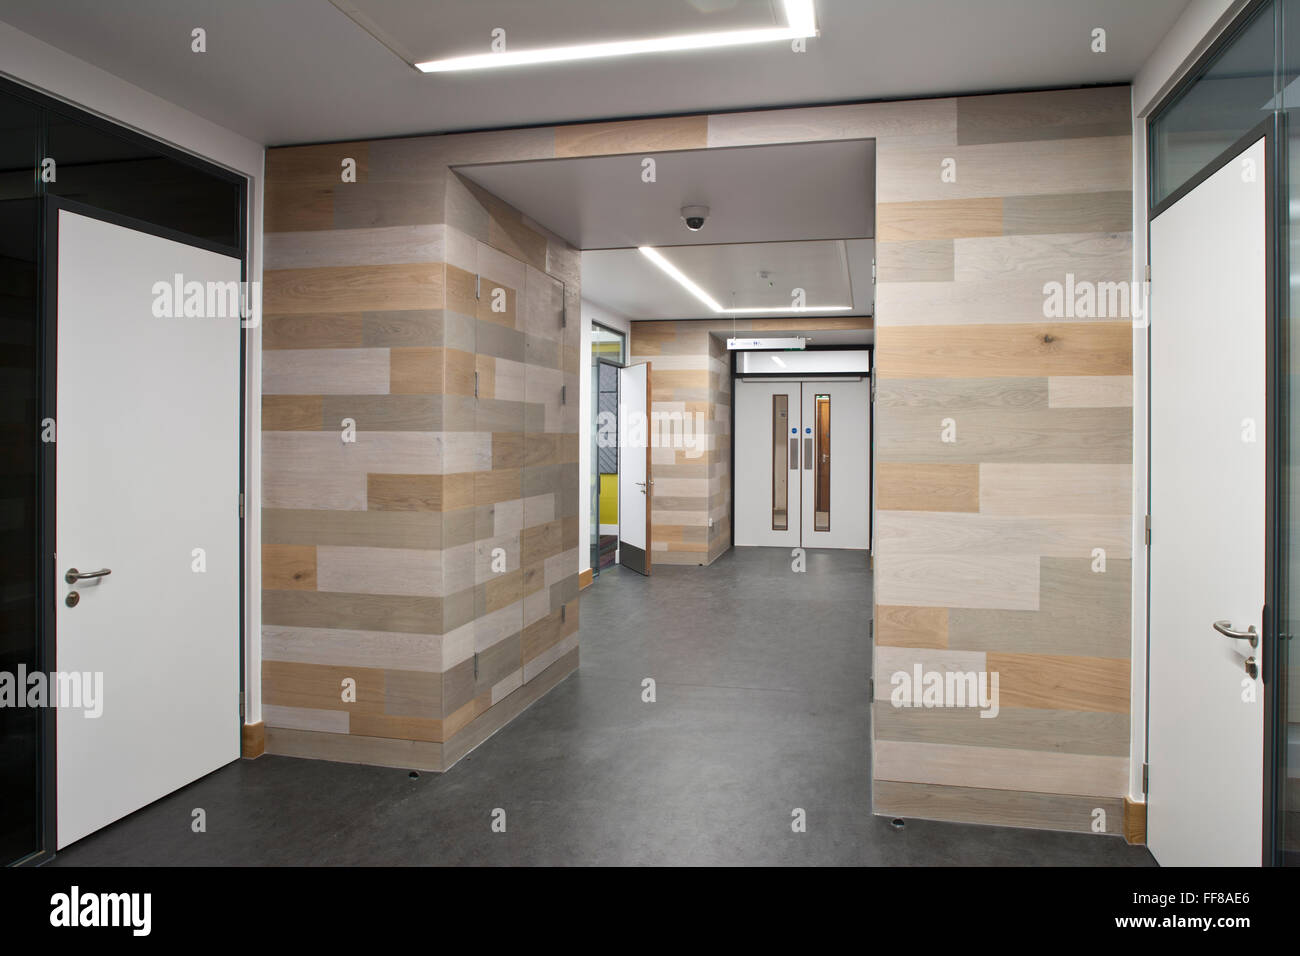 St Georges Hospital Tooting London Stock Photo